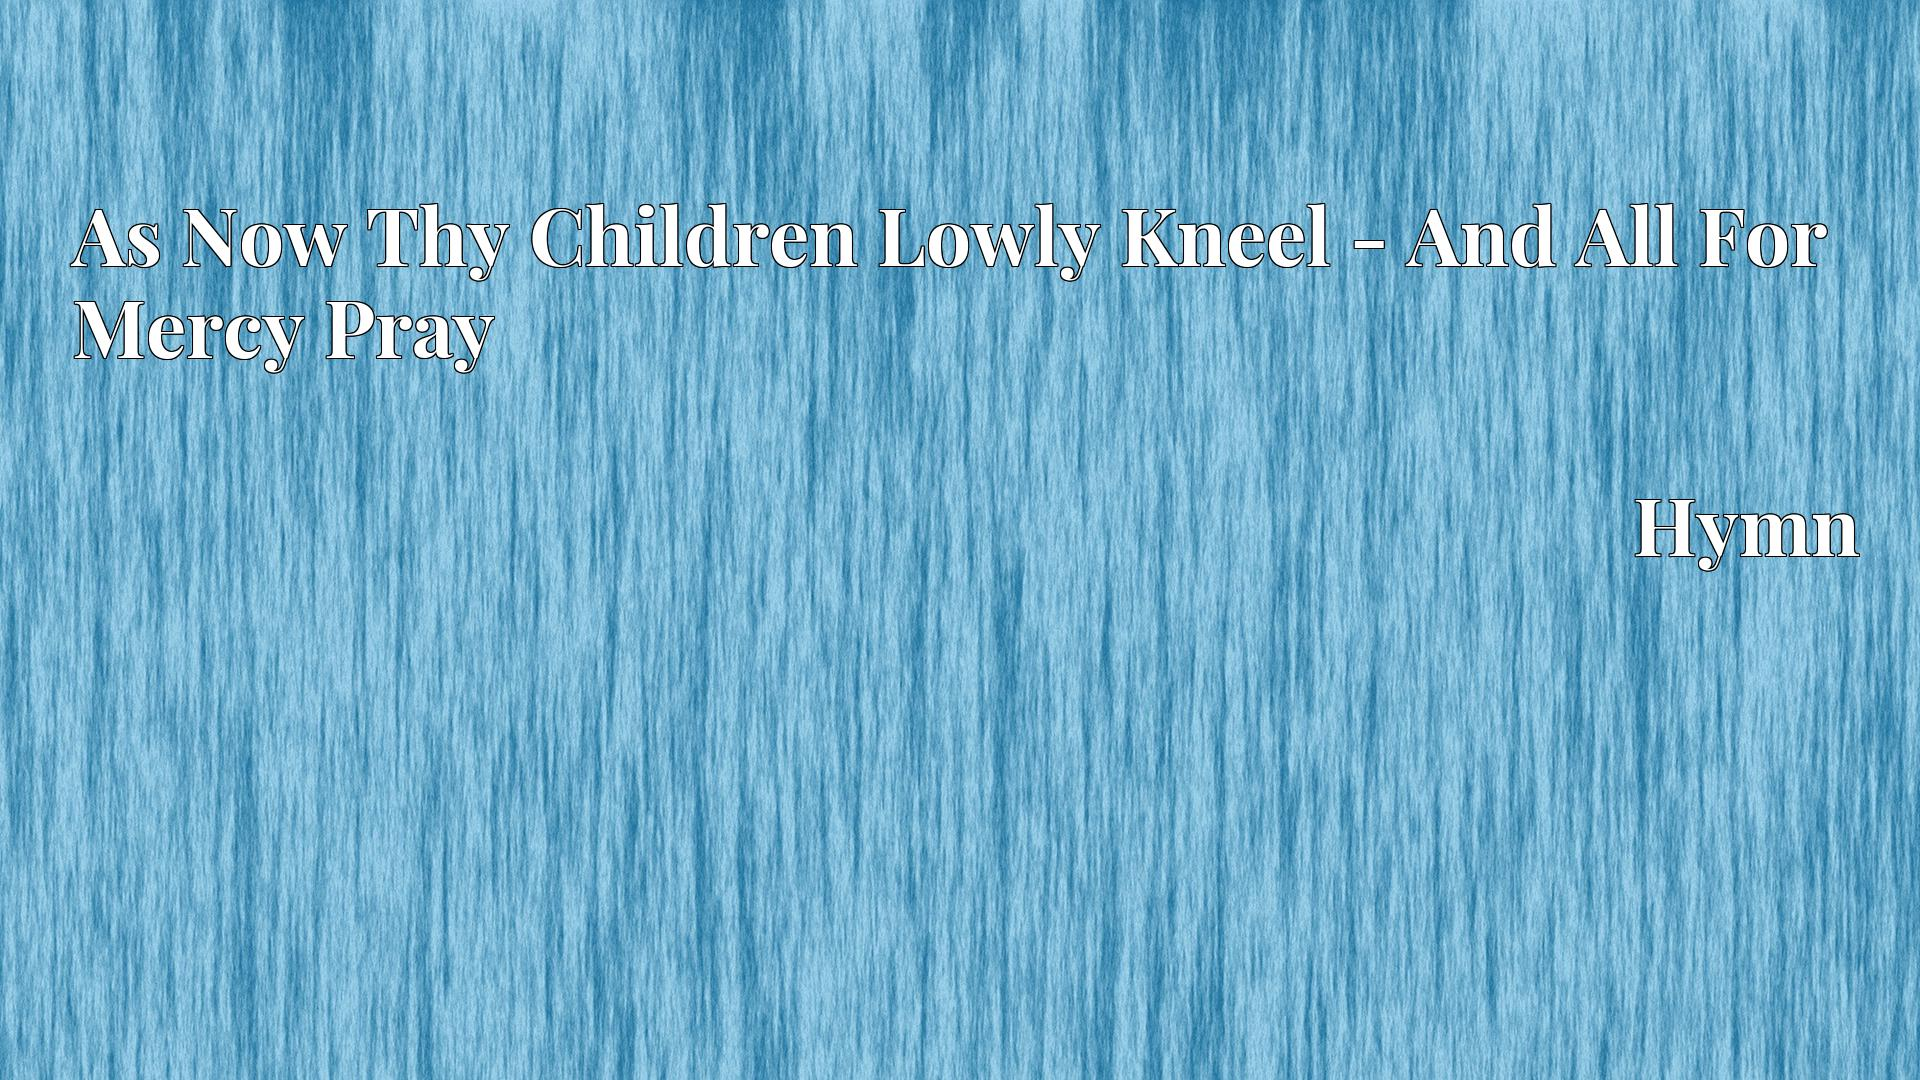 As Now Thy Children Lowly Kneel - And All For Mercy Pray - Hymn